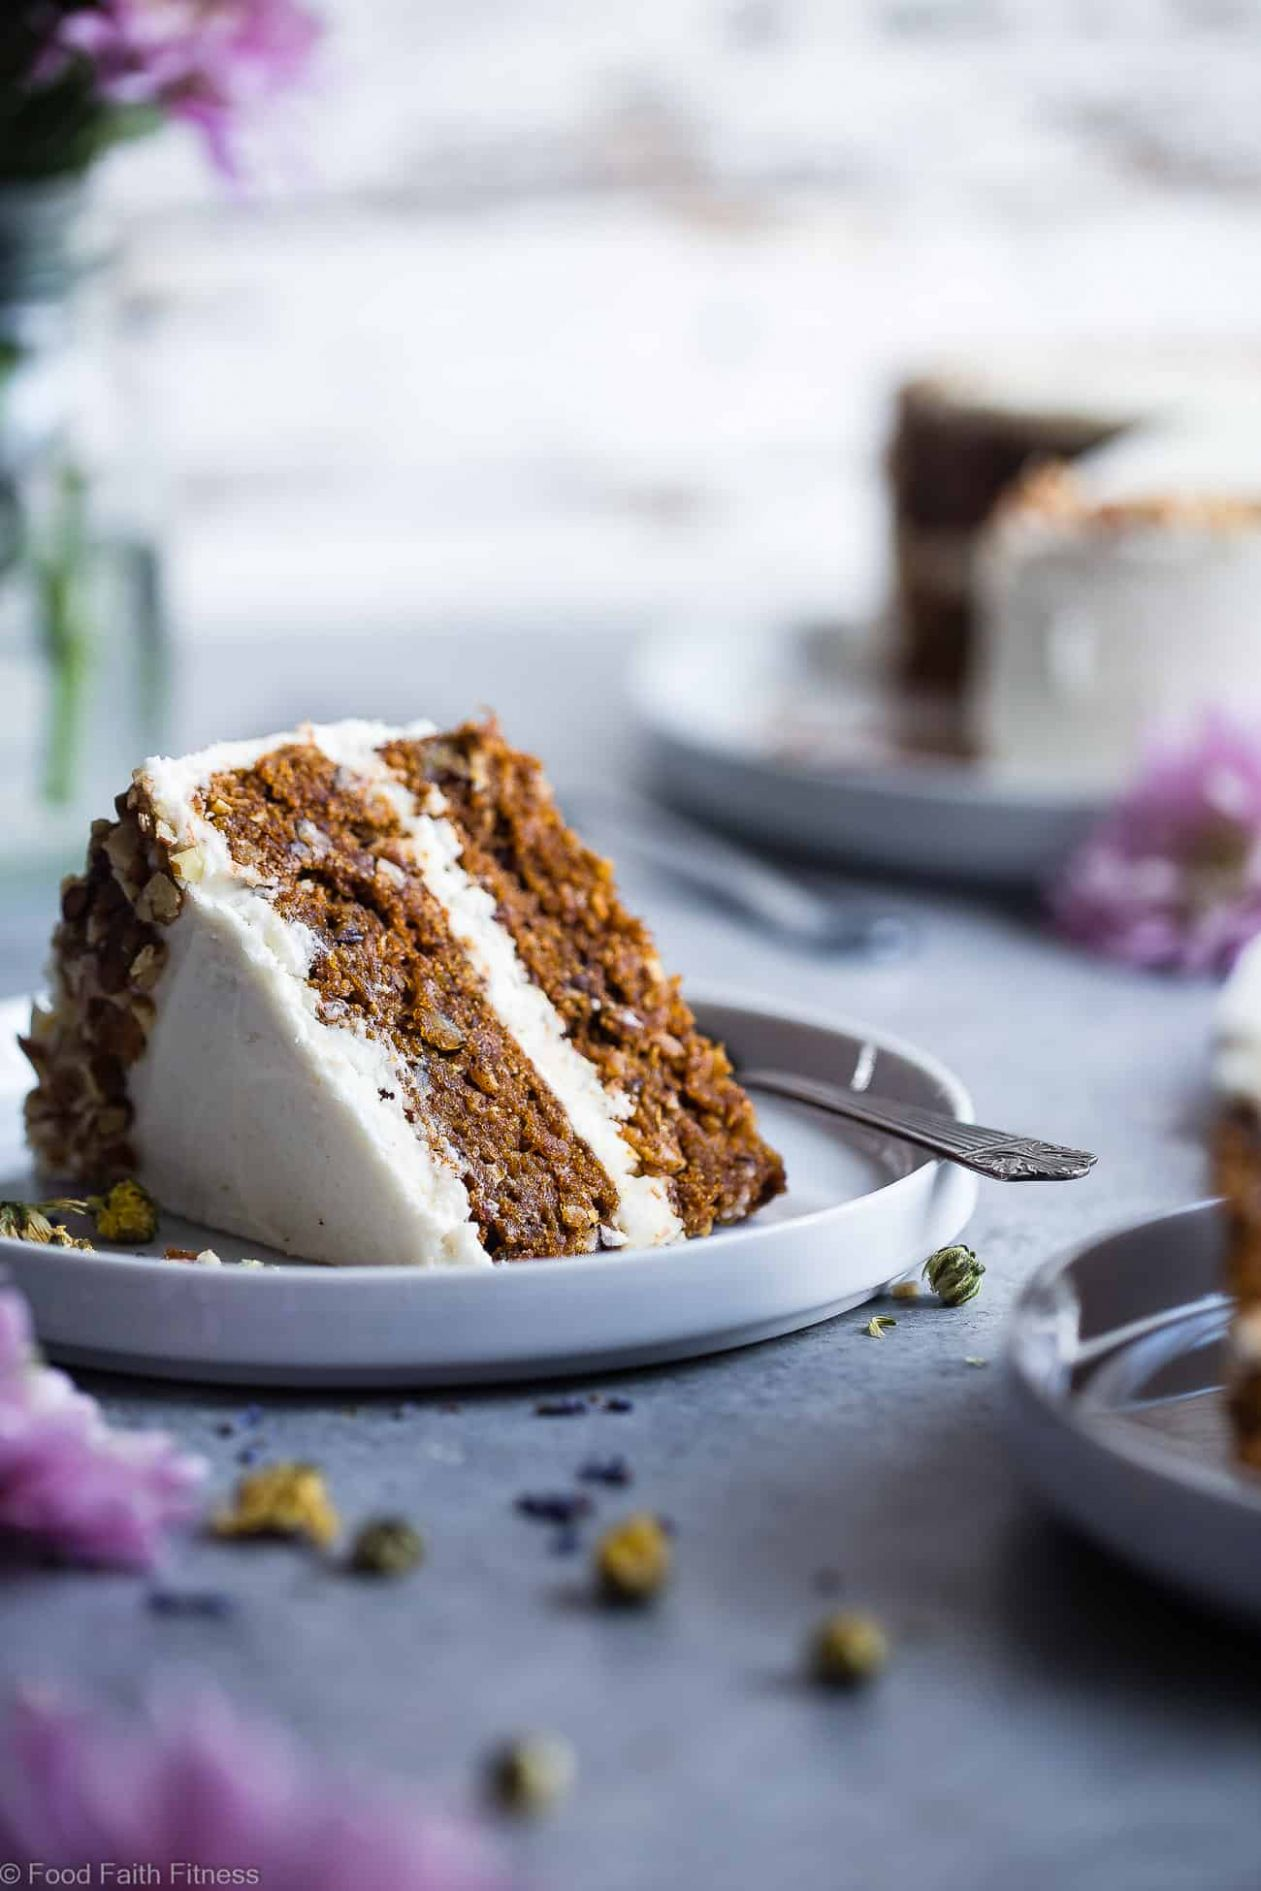 Vegan Gluten Free Dairy Free Carrot Cake | Food Faith Fitness